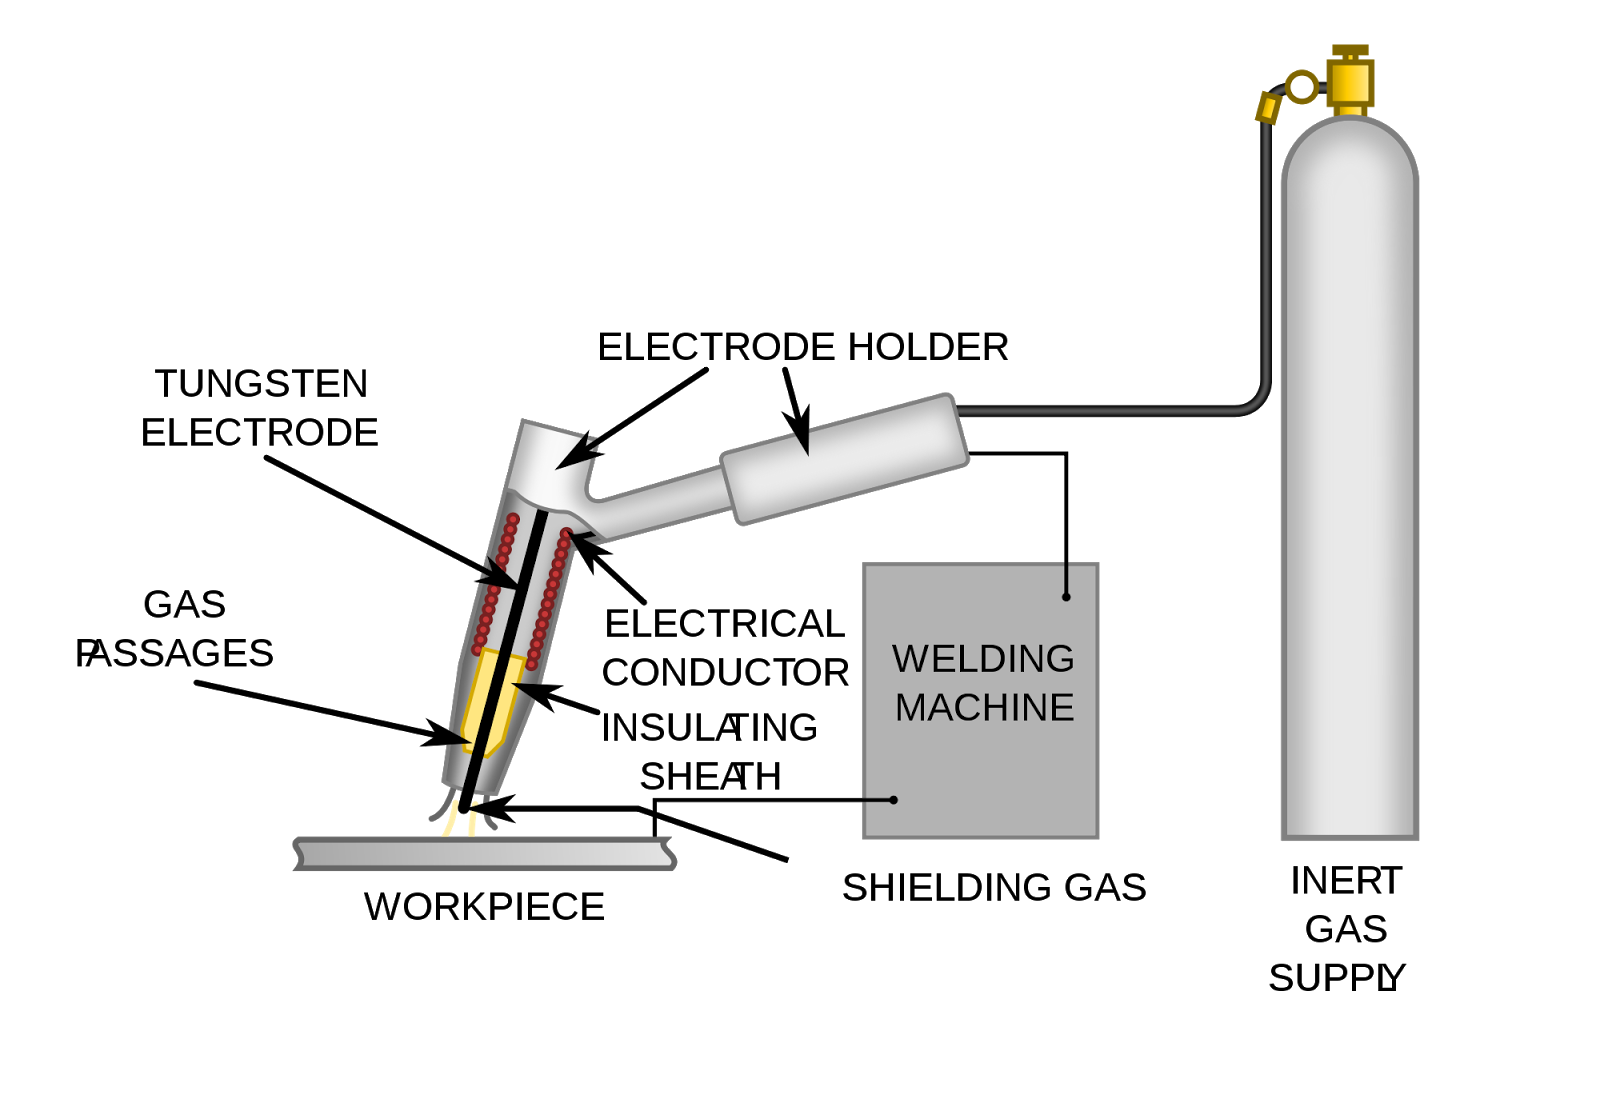 Types Of Welding Mech4study